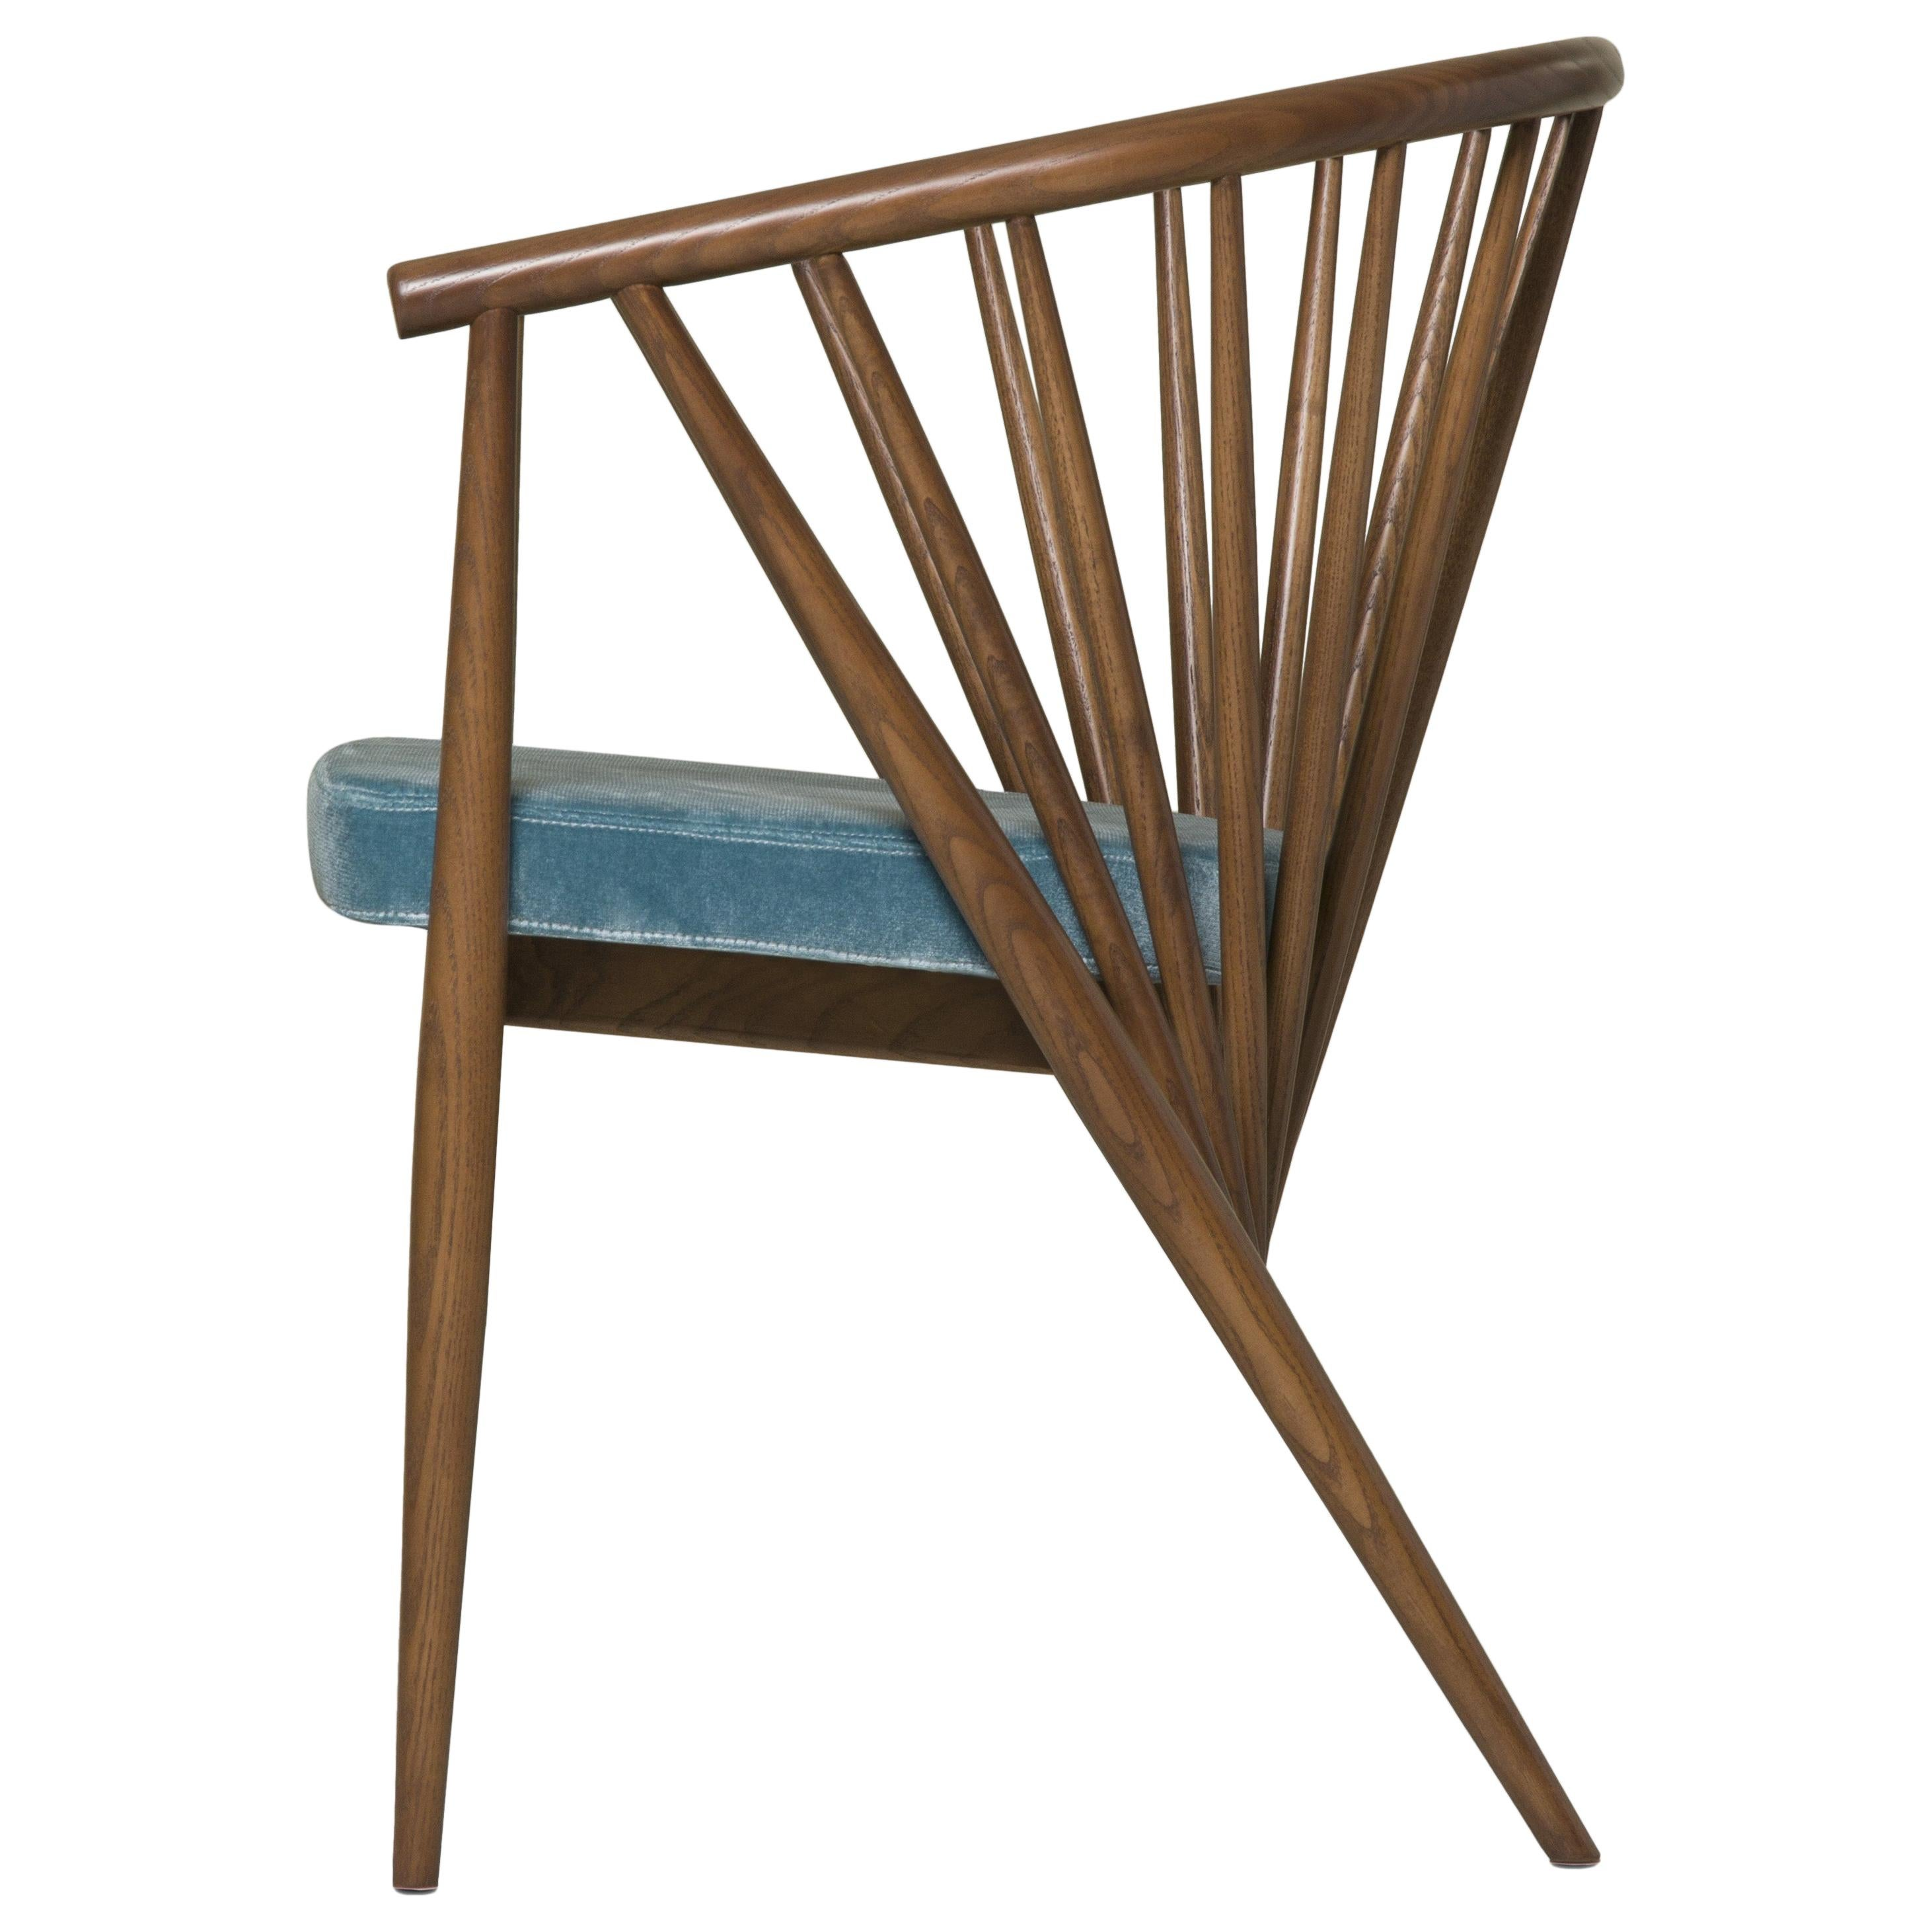 Jenny by Morelato, Easy Chair in Hand Turned Ashwood